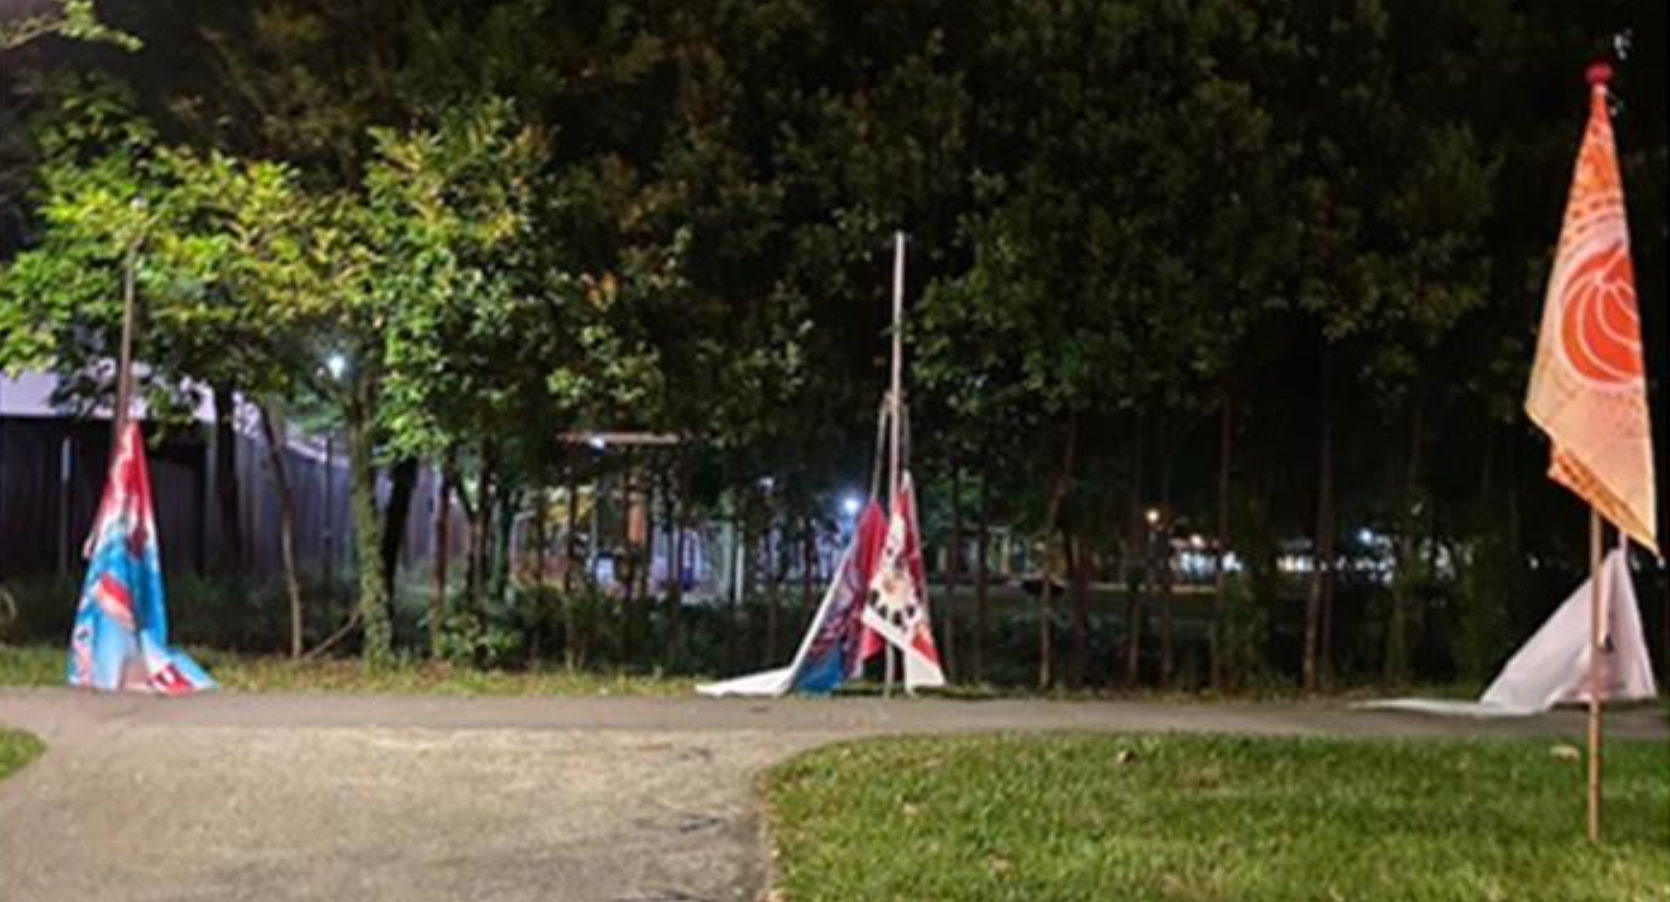 Man charged with cutting and damaging National Day Parade banners